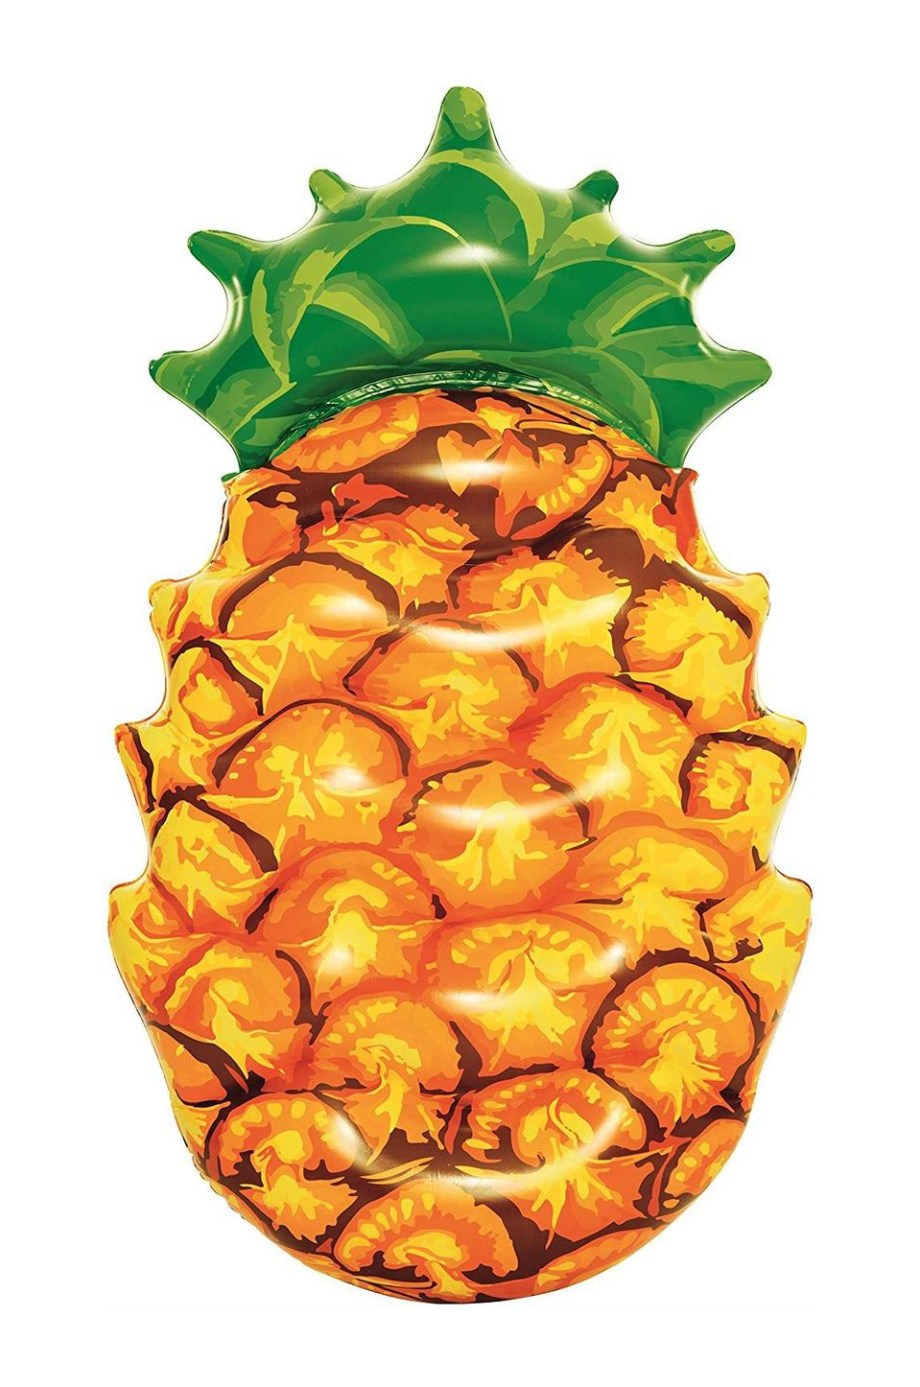 43159-madrac-za-plivanje-fruit-float134-174cm-ananas